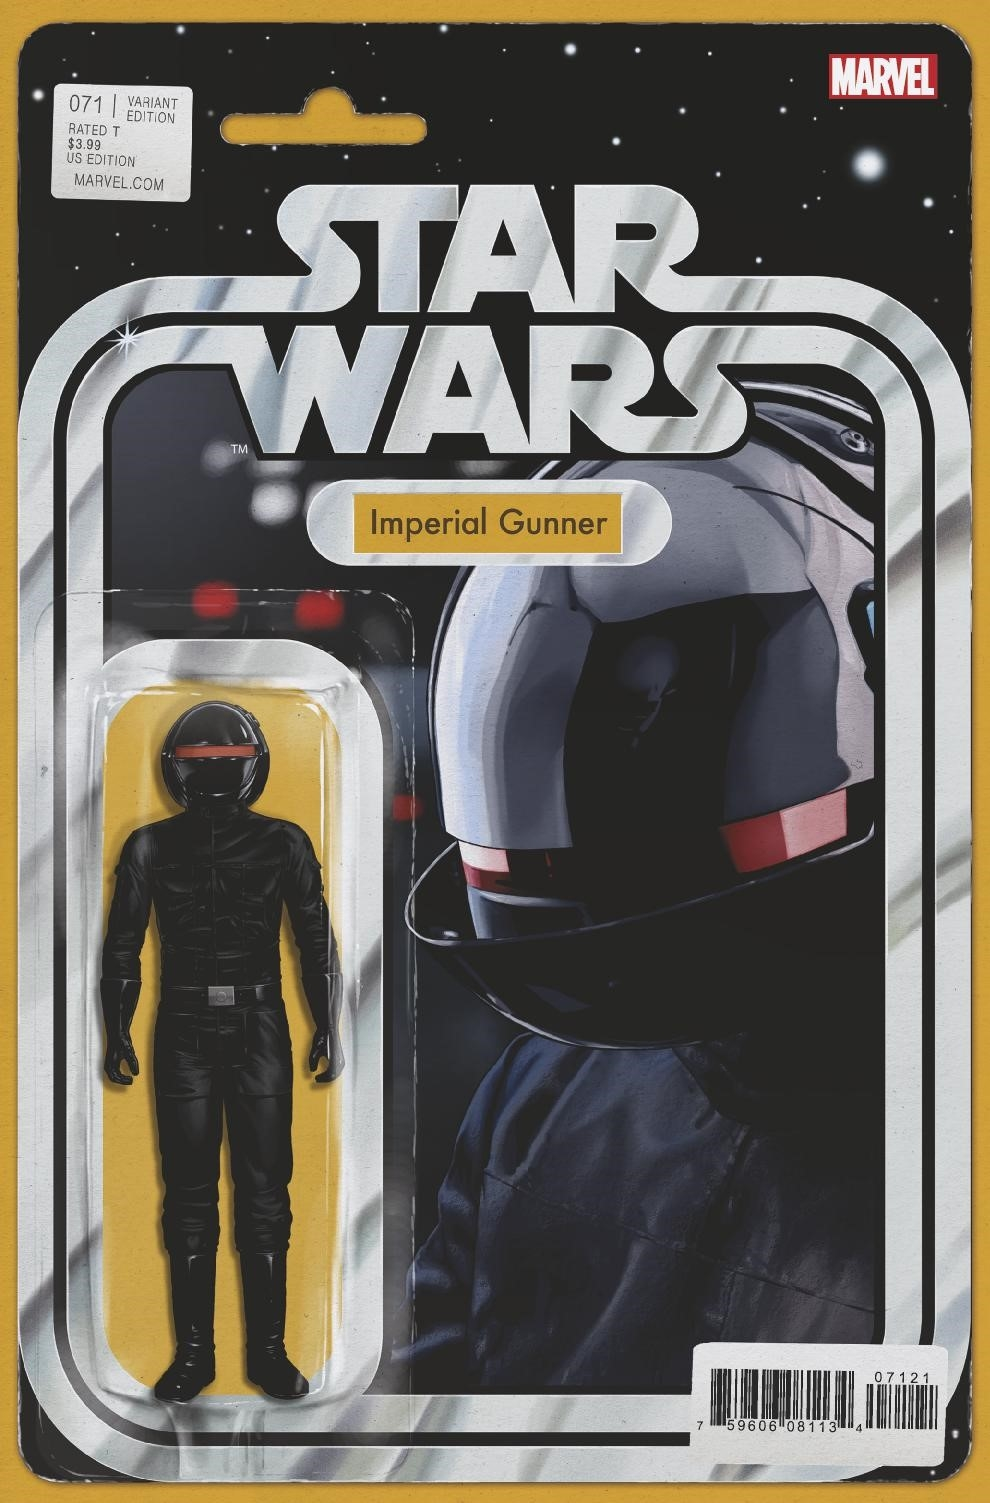 Star Wars #71 (Action Figure Variant Cover) (04.09.2019)